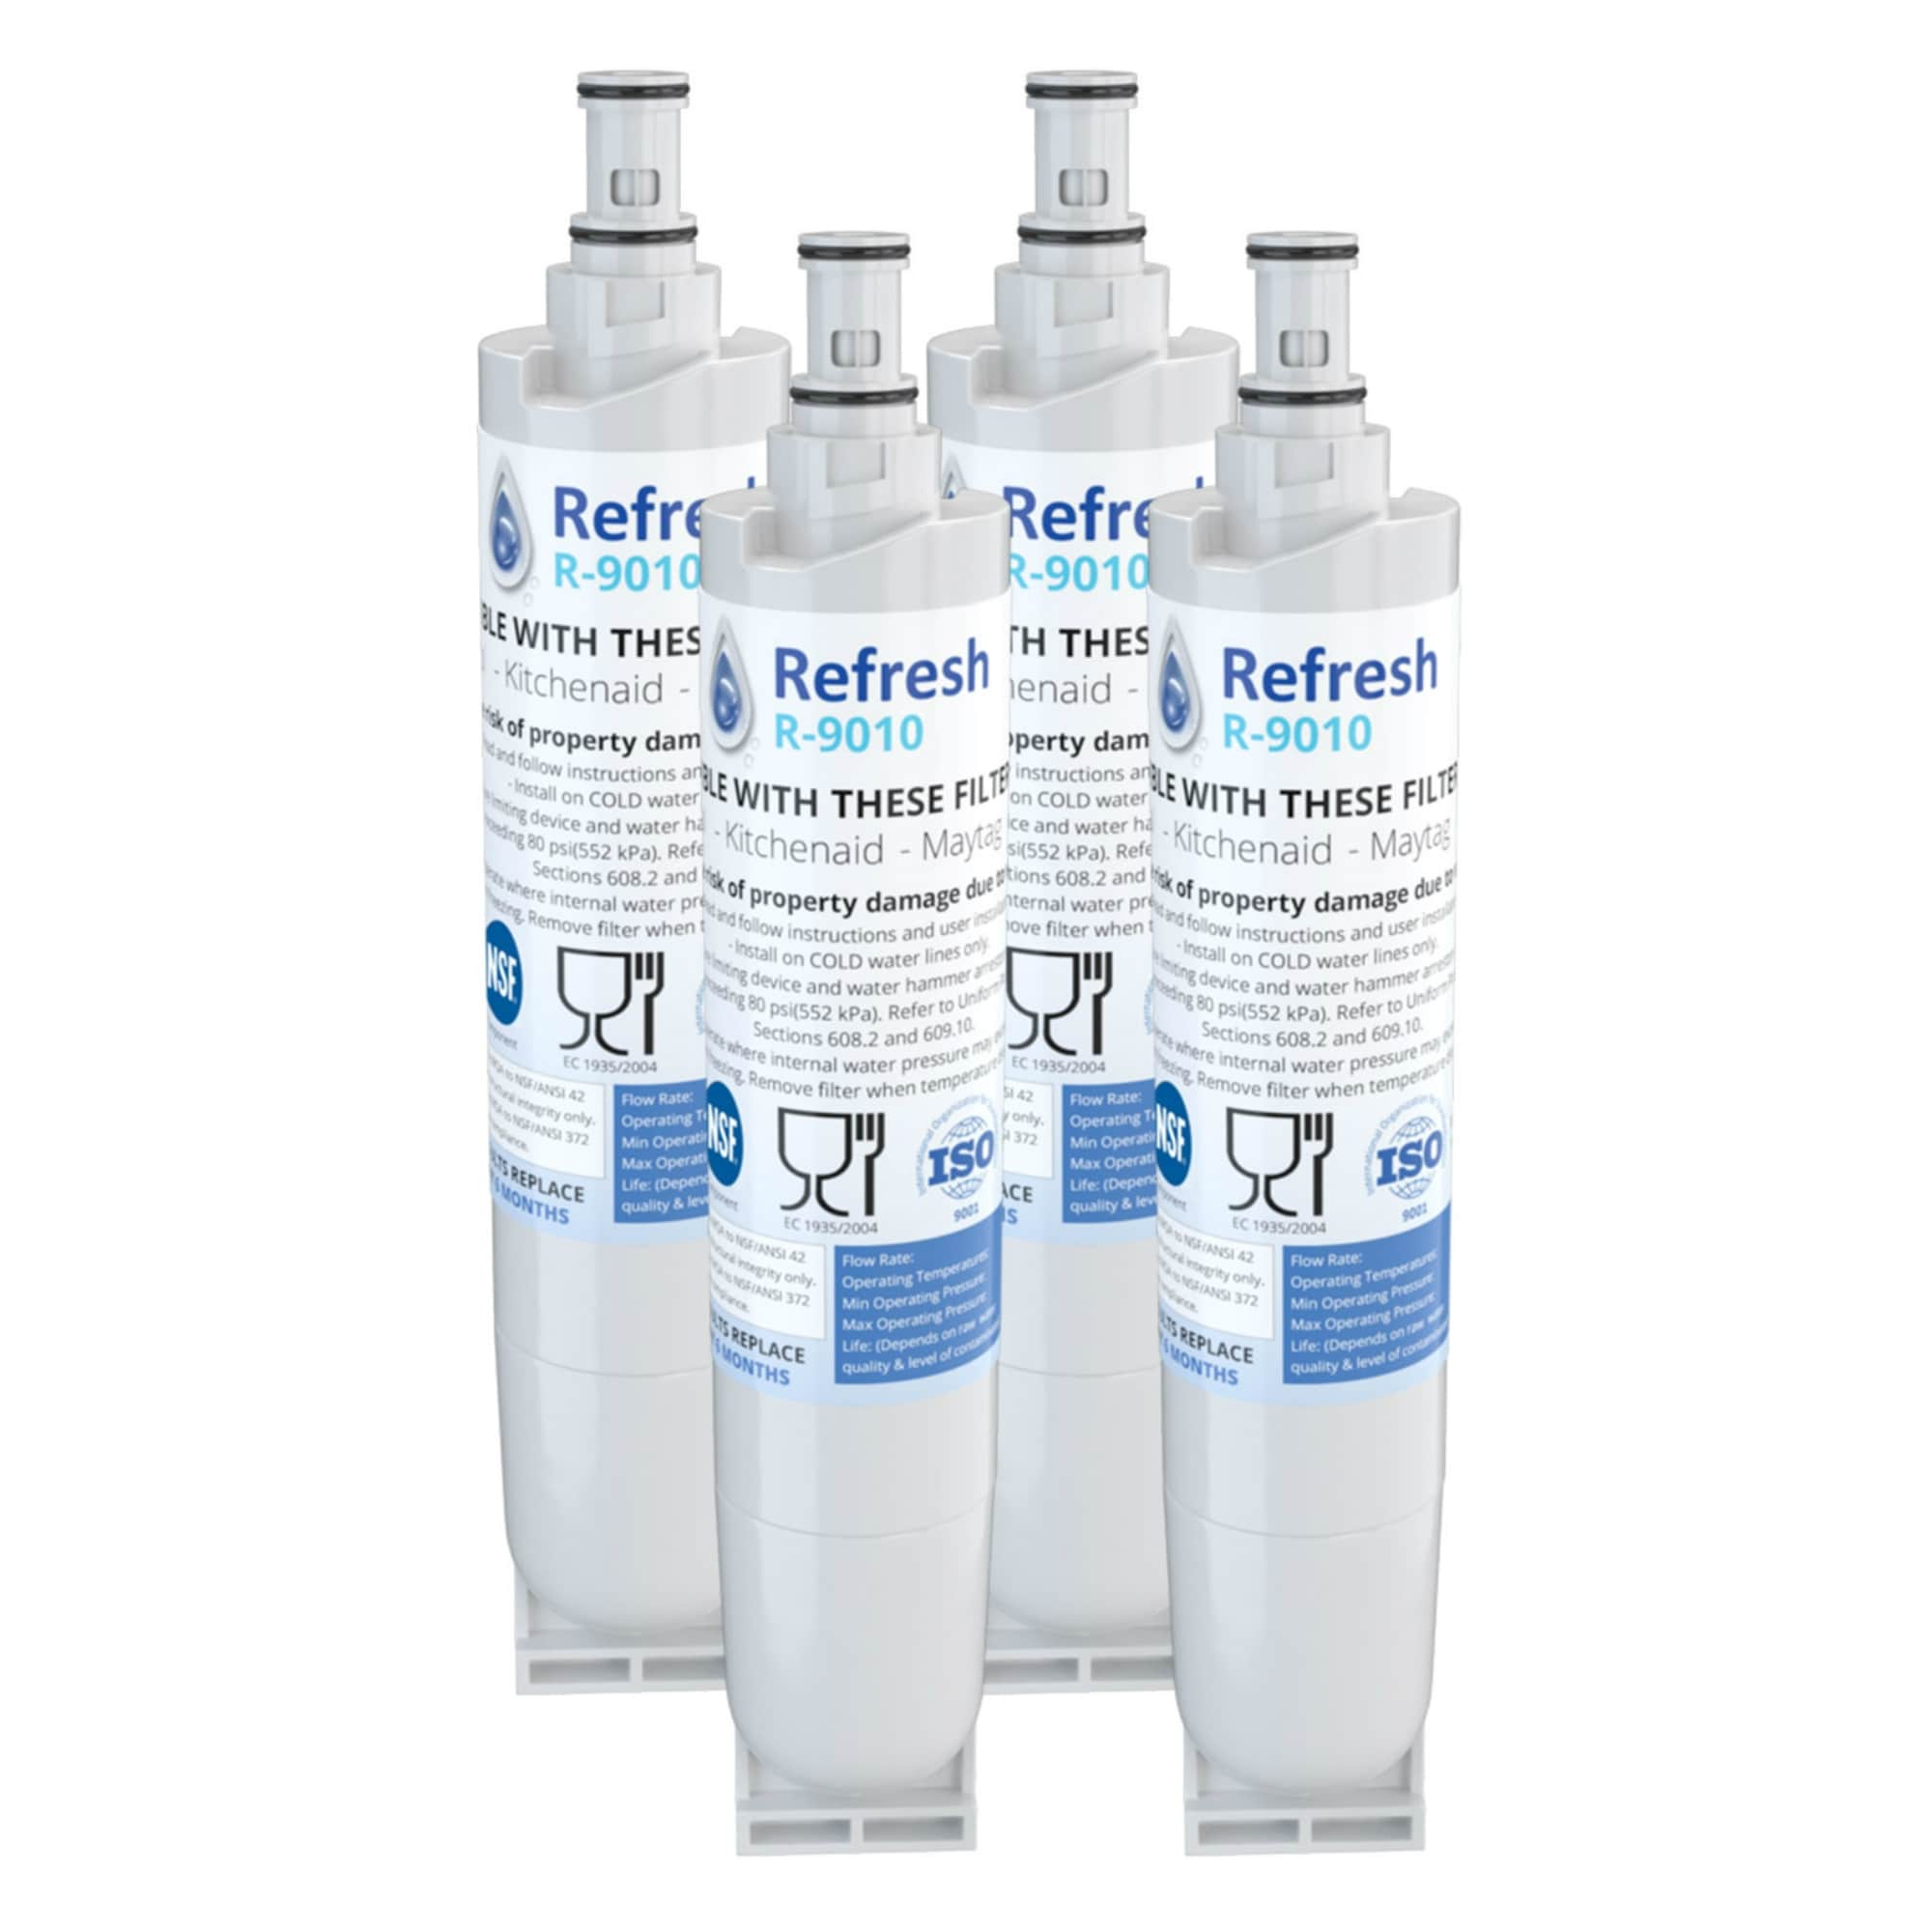 Replacement for Whirlpool 4396508 EveryDrop Filter 5 Kenmore 9010  Refrigerator Water Filter (4 Pack)